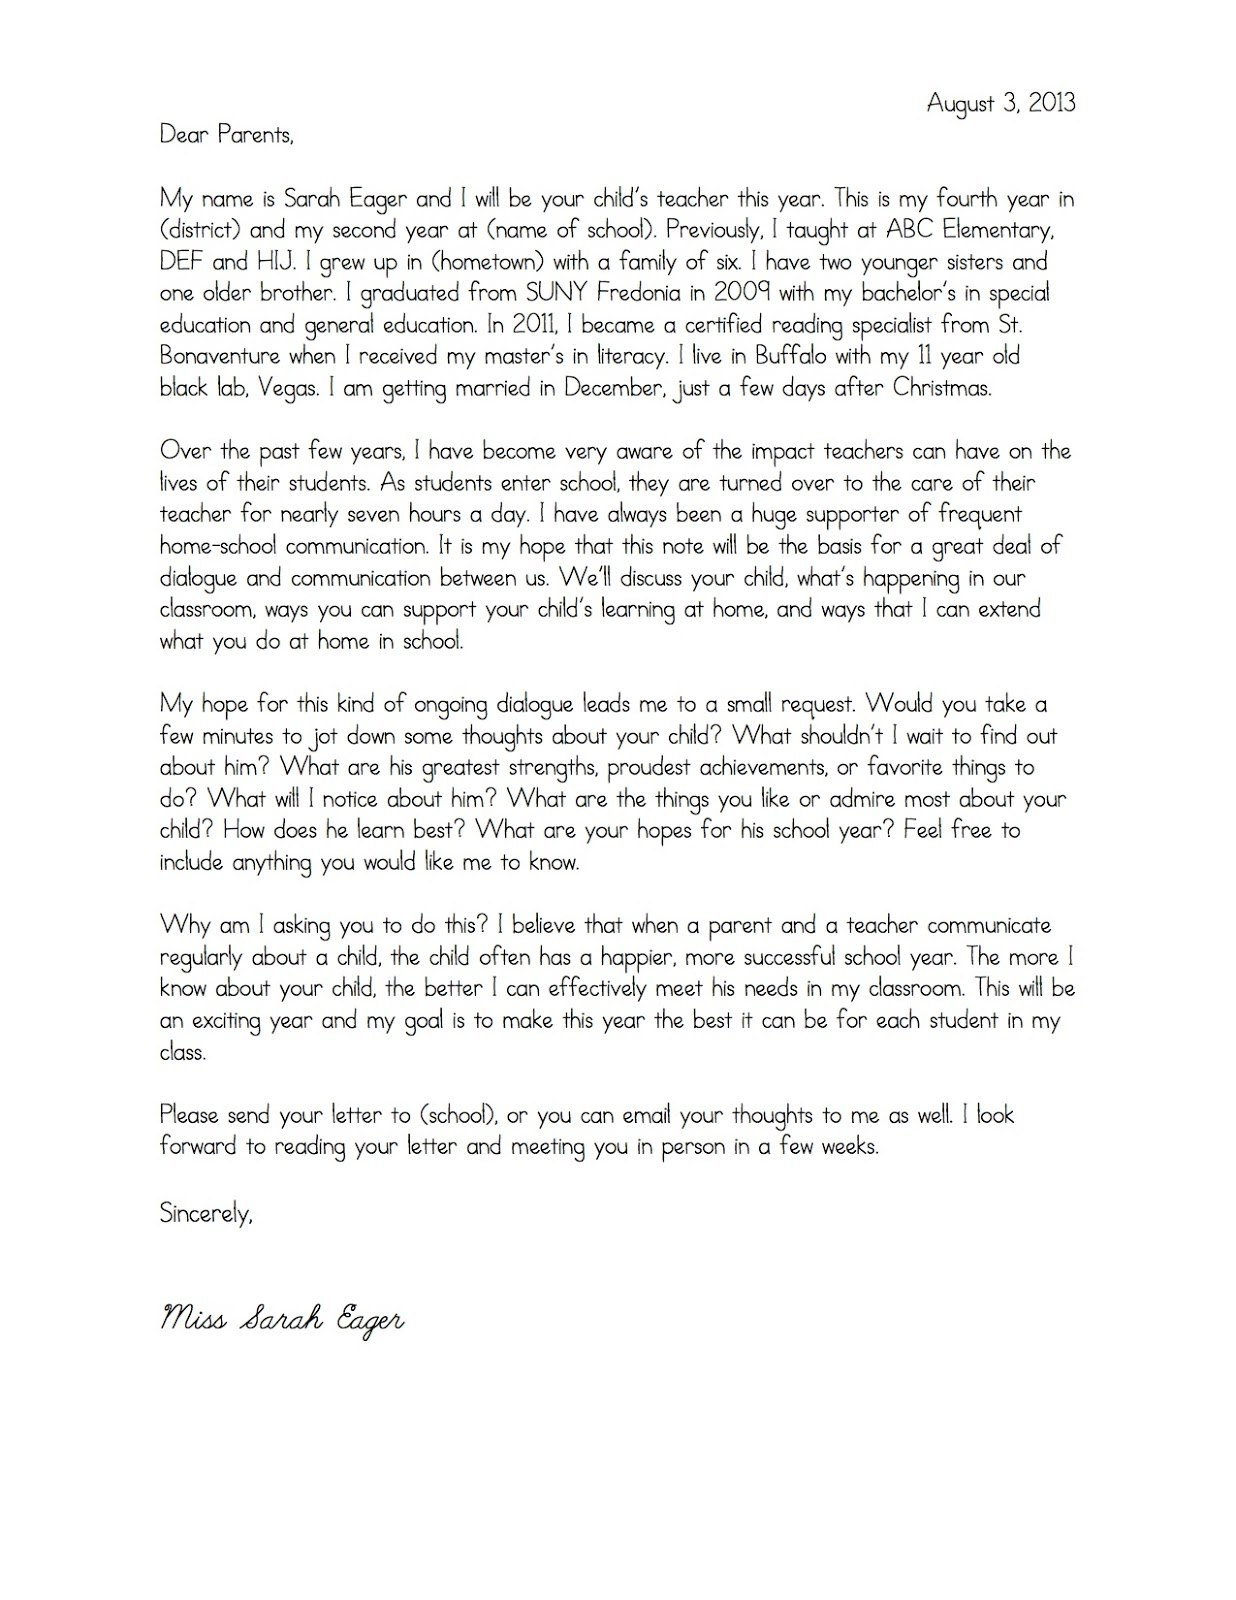 Teacher Welcome Letter To Parents Template Samples  Letter Cover Pertaining To Letter To Parents Template From Teachers